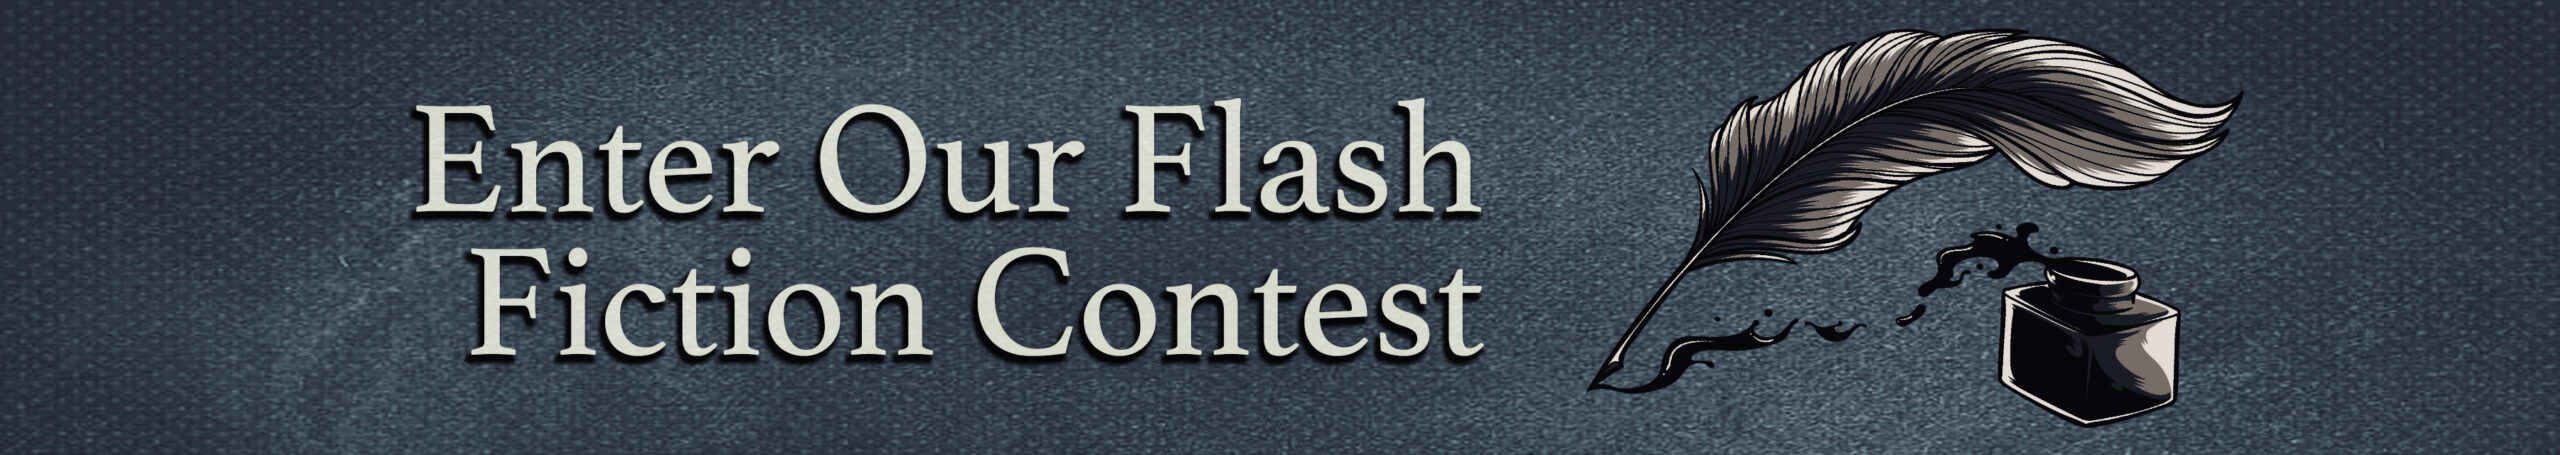 Flash Fiction Contest banner